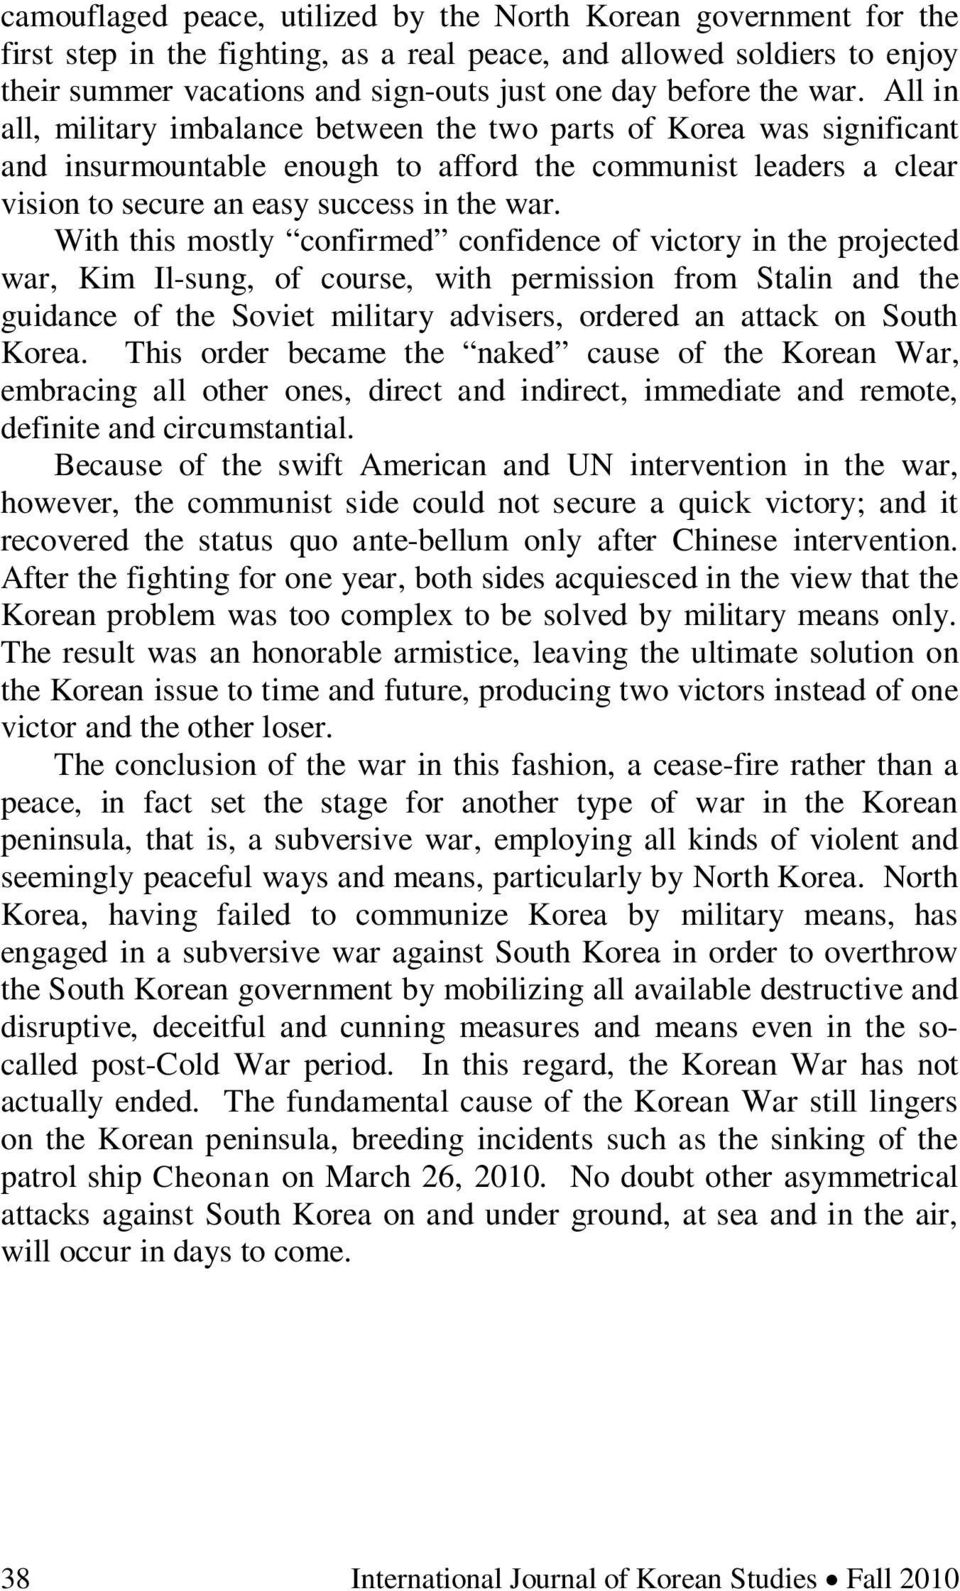 With this mostly confirmed confidence of victory in the projected war, Kim Il-sung, of course, with permission from Stalin and the guidance of the Soviet military advisers, ordered an attack on South